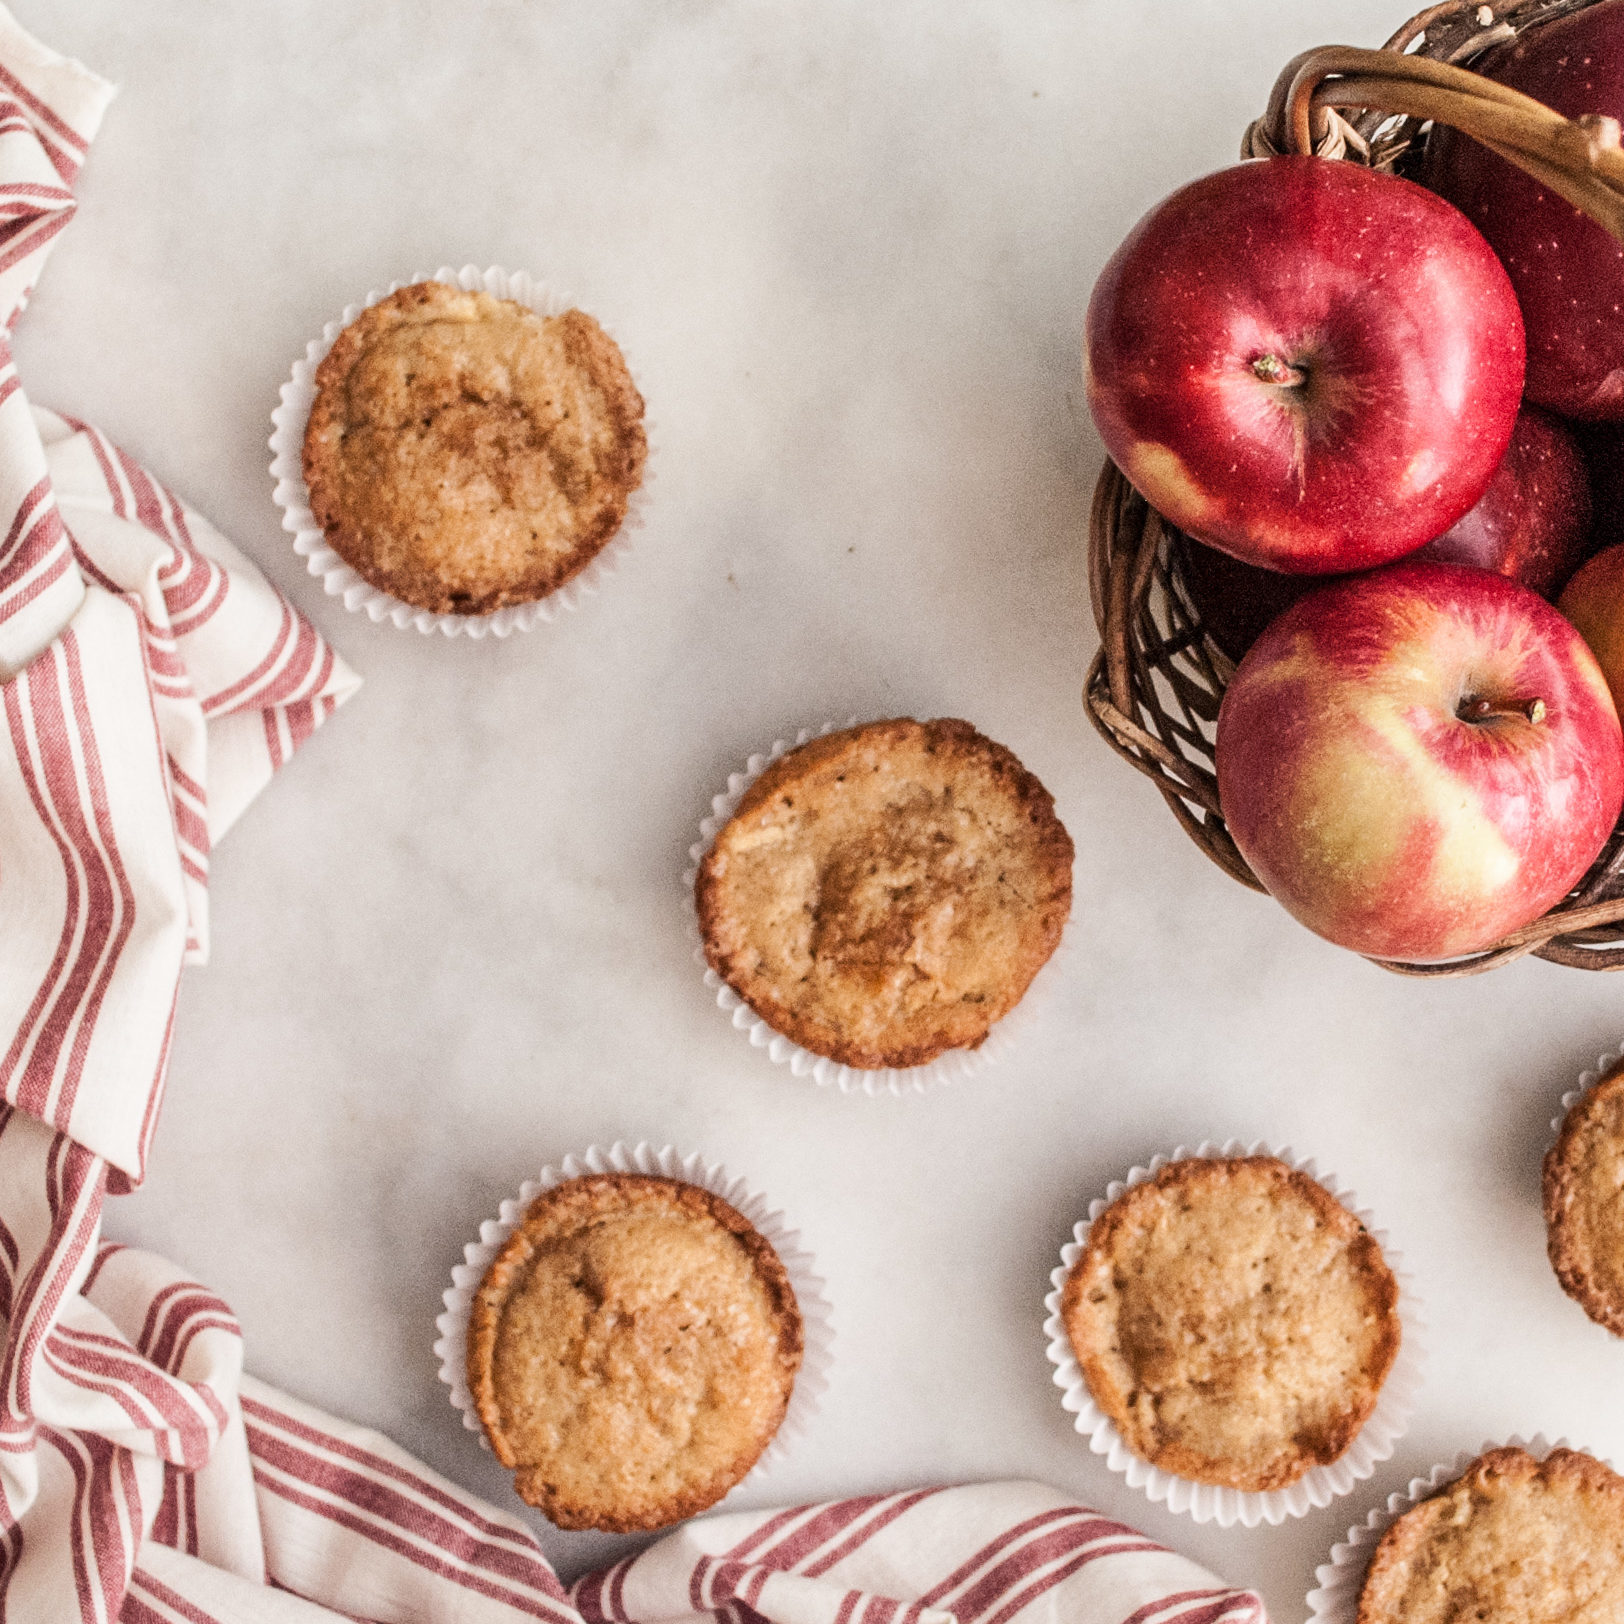 Apple Spiced Muffins Recipe, with free printable recipe. Easy instructions, perfect for breakfast, brunch, or even festive cupcakes!